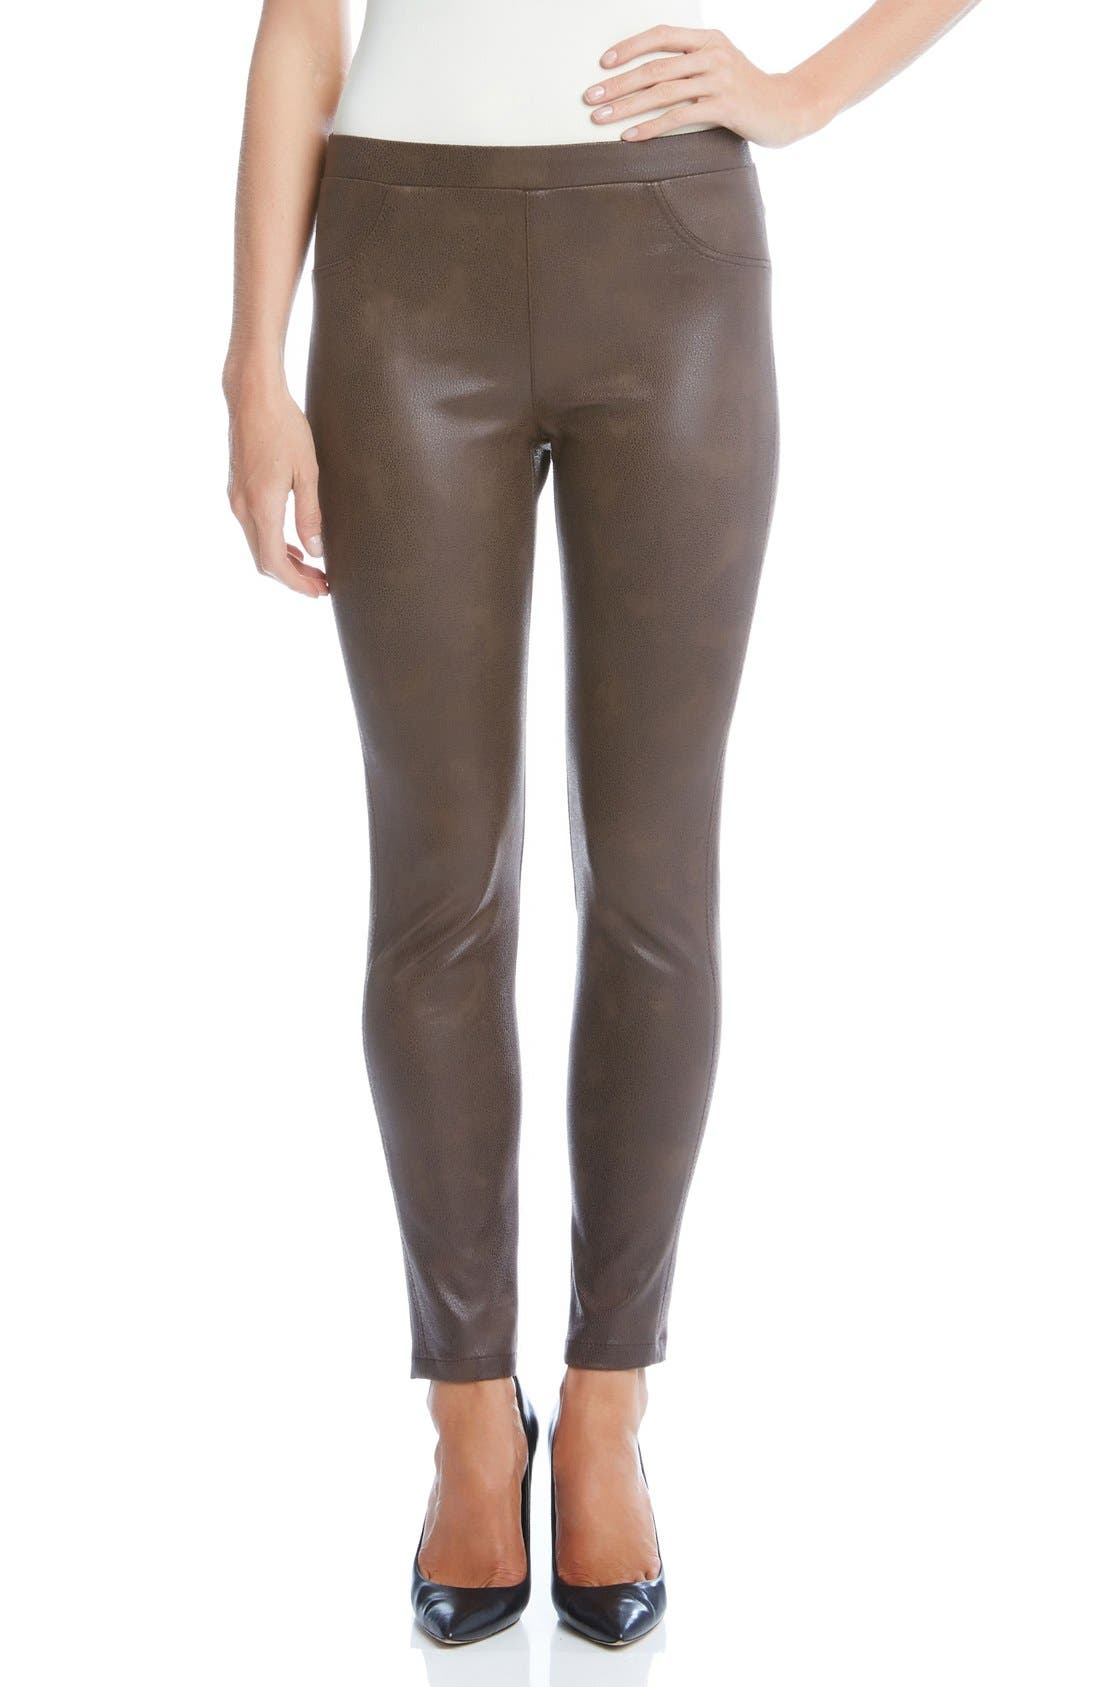 Karen Karen Stretch Faux Leather Skinny Pants